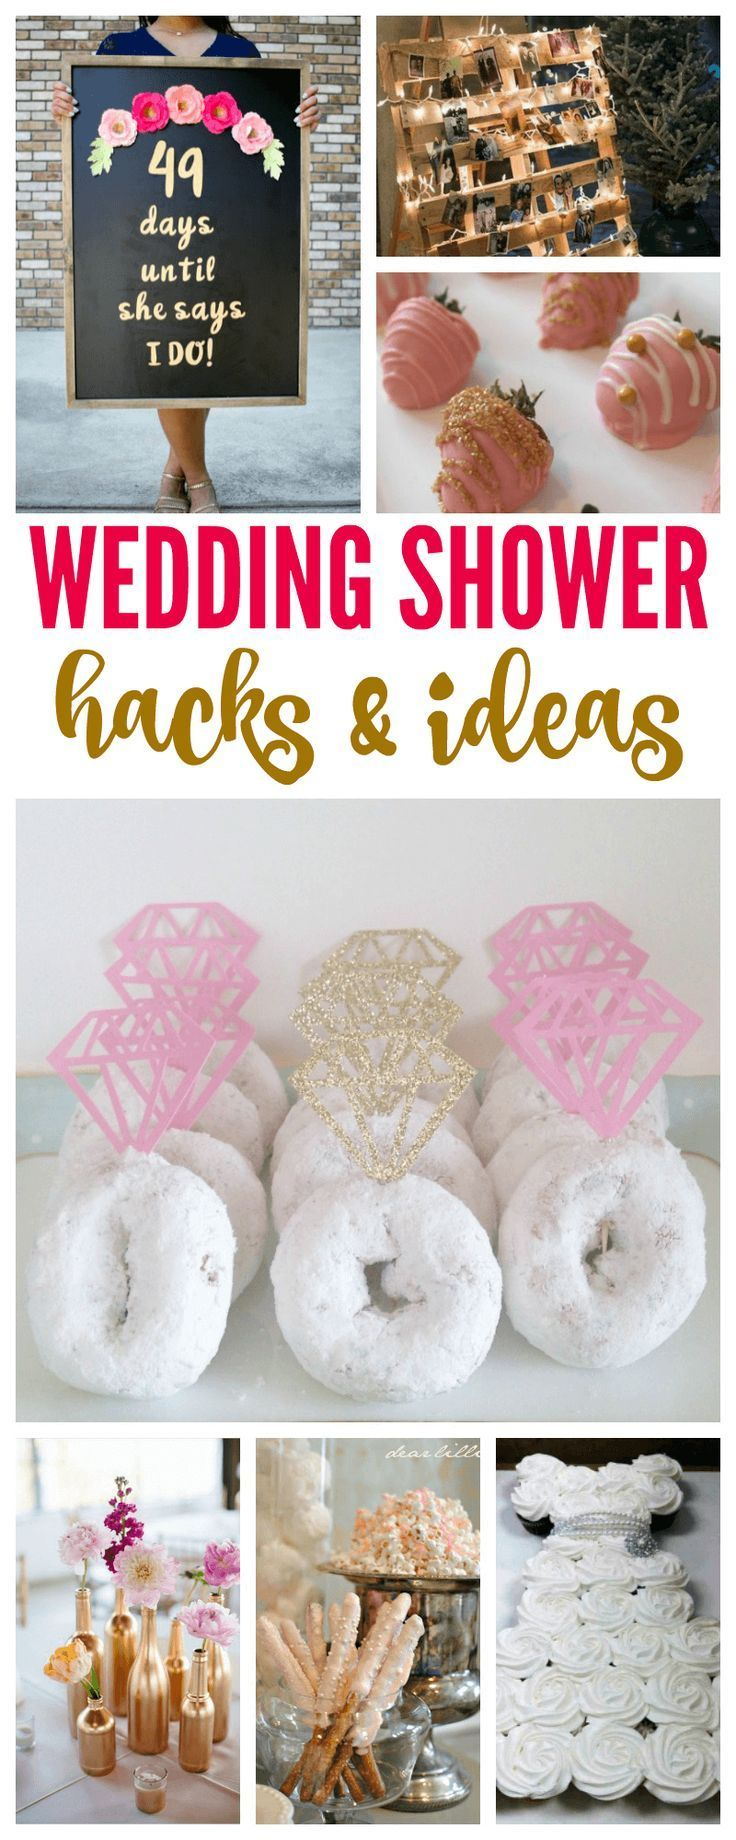 best shower ideas images on pinterest marriage books and cakes